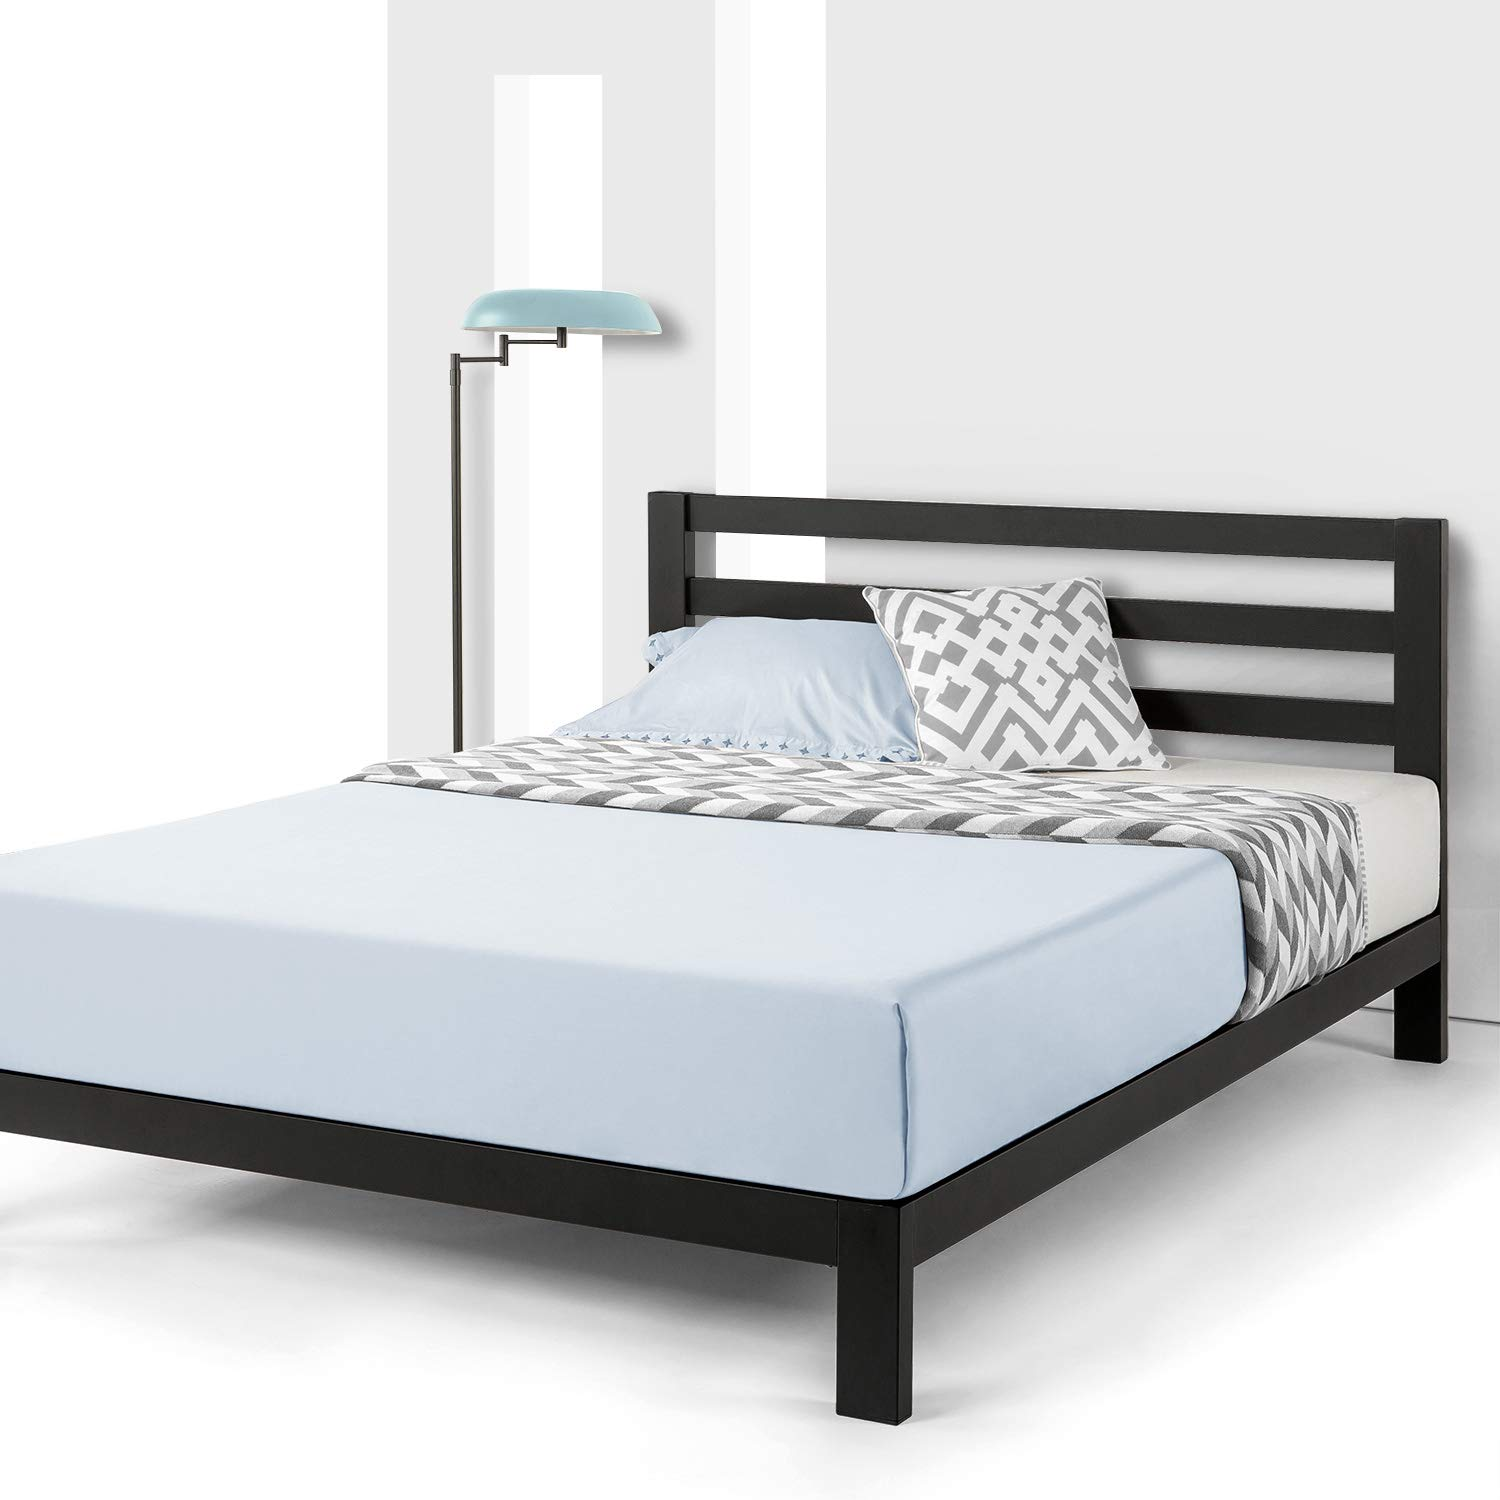 MELLOW Twin Frame 10 inch Heavy Duty Metal Platform Bed/Wooden Slat Support/Mattress Foundation(No Box Spring Needed), Black Best Price Mattress Twin Bed Frame